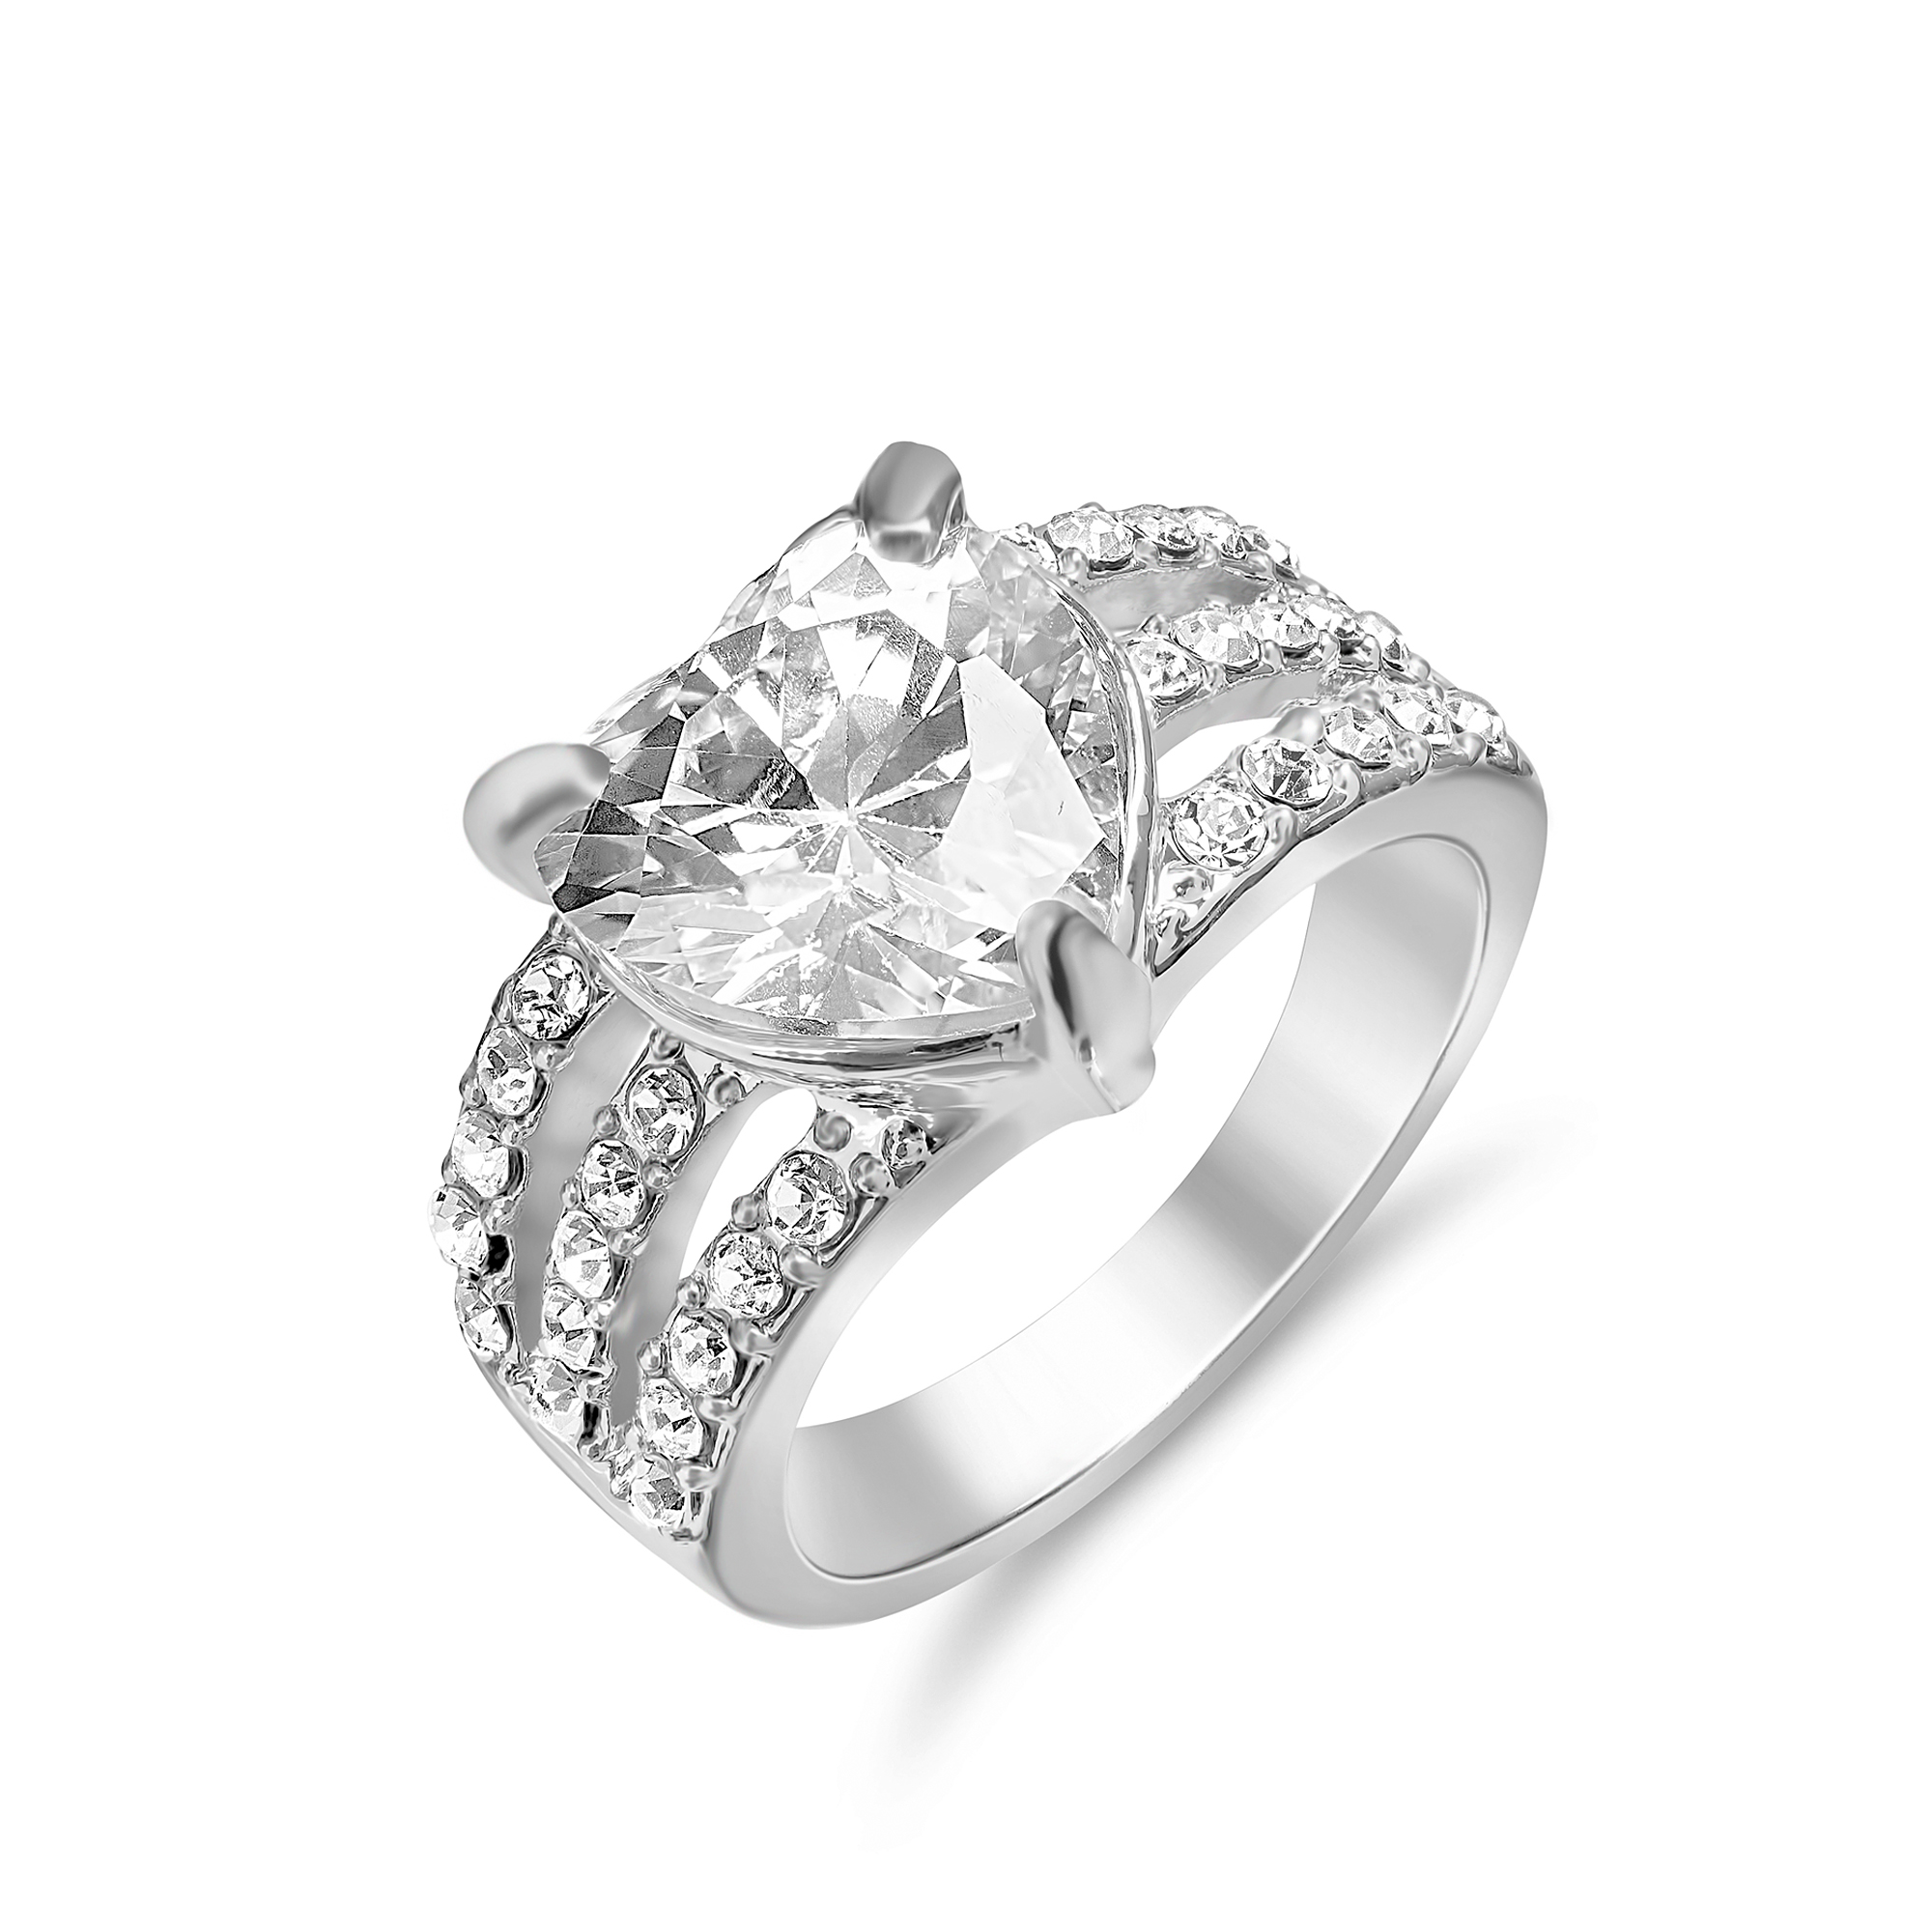 g round of miabella cubic princess and walmart rings new carat t hers cut w zirconia his wedding